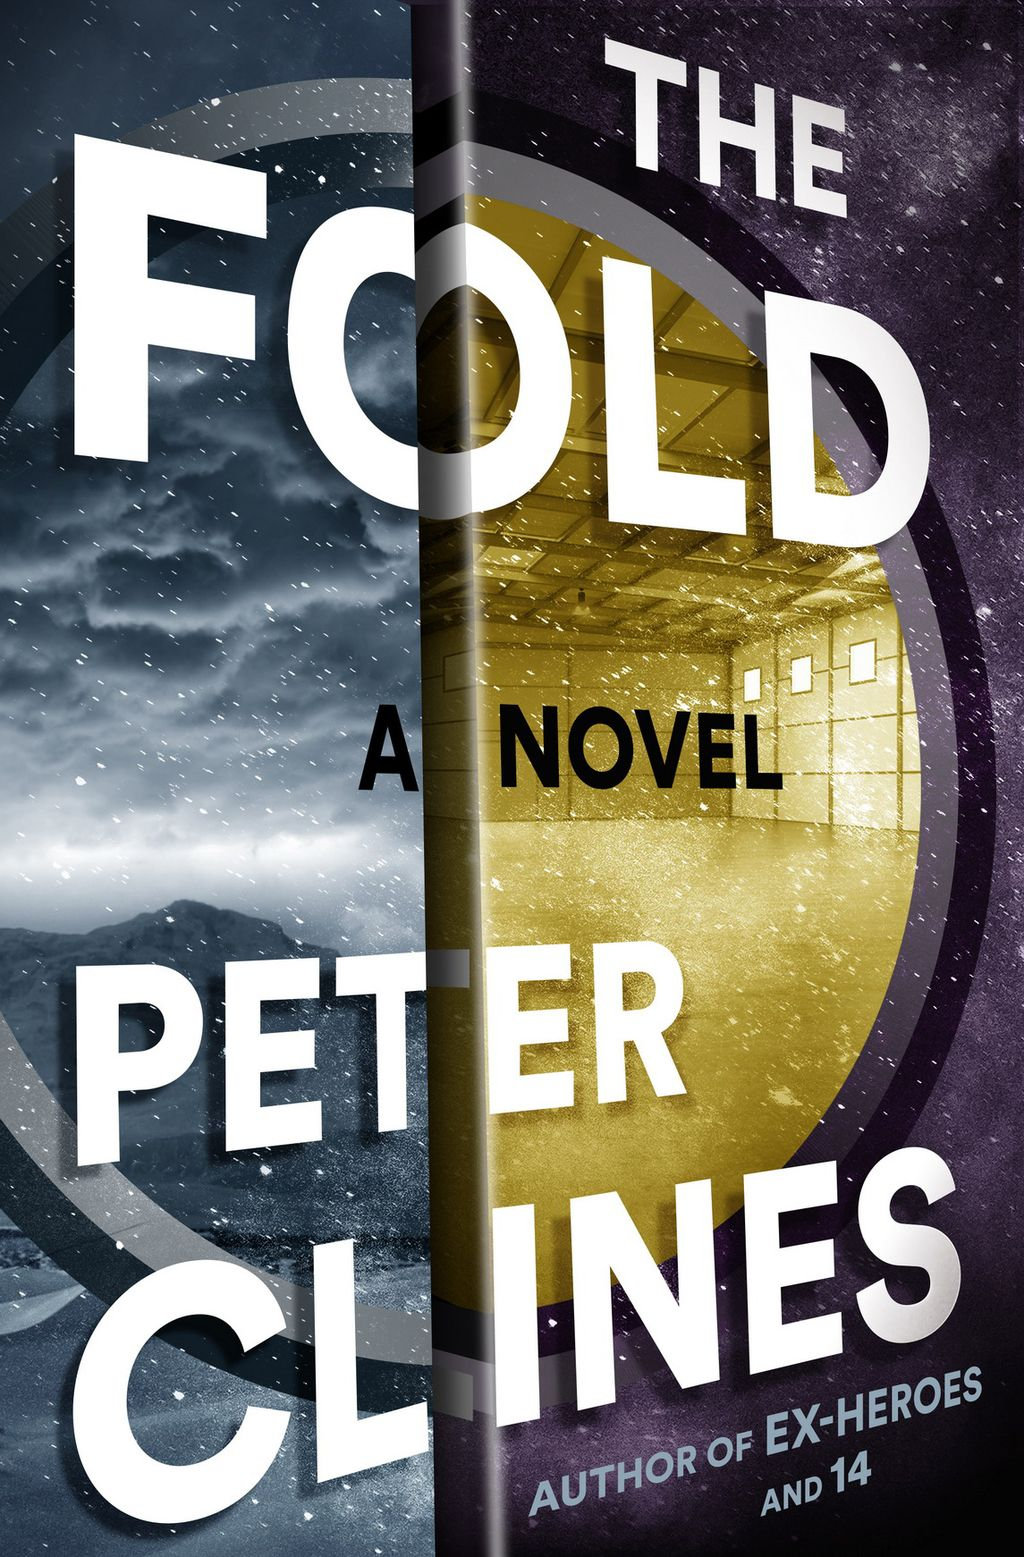 The Fold By Peter Clines (With images) Science fiction